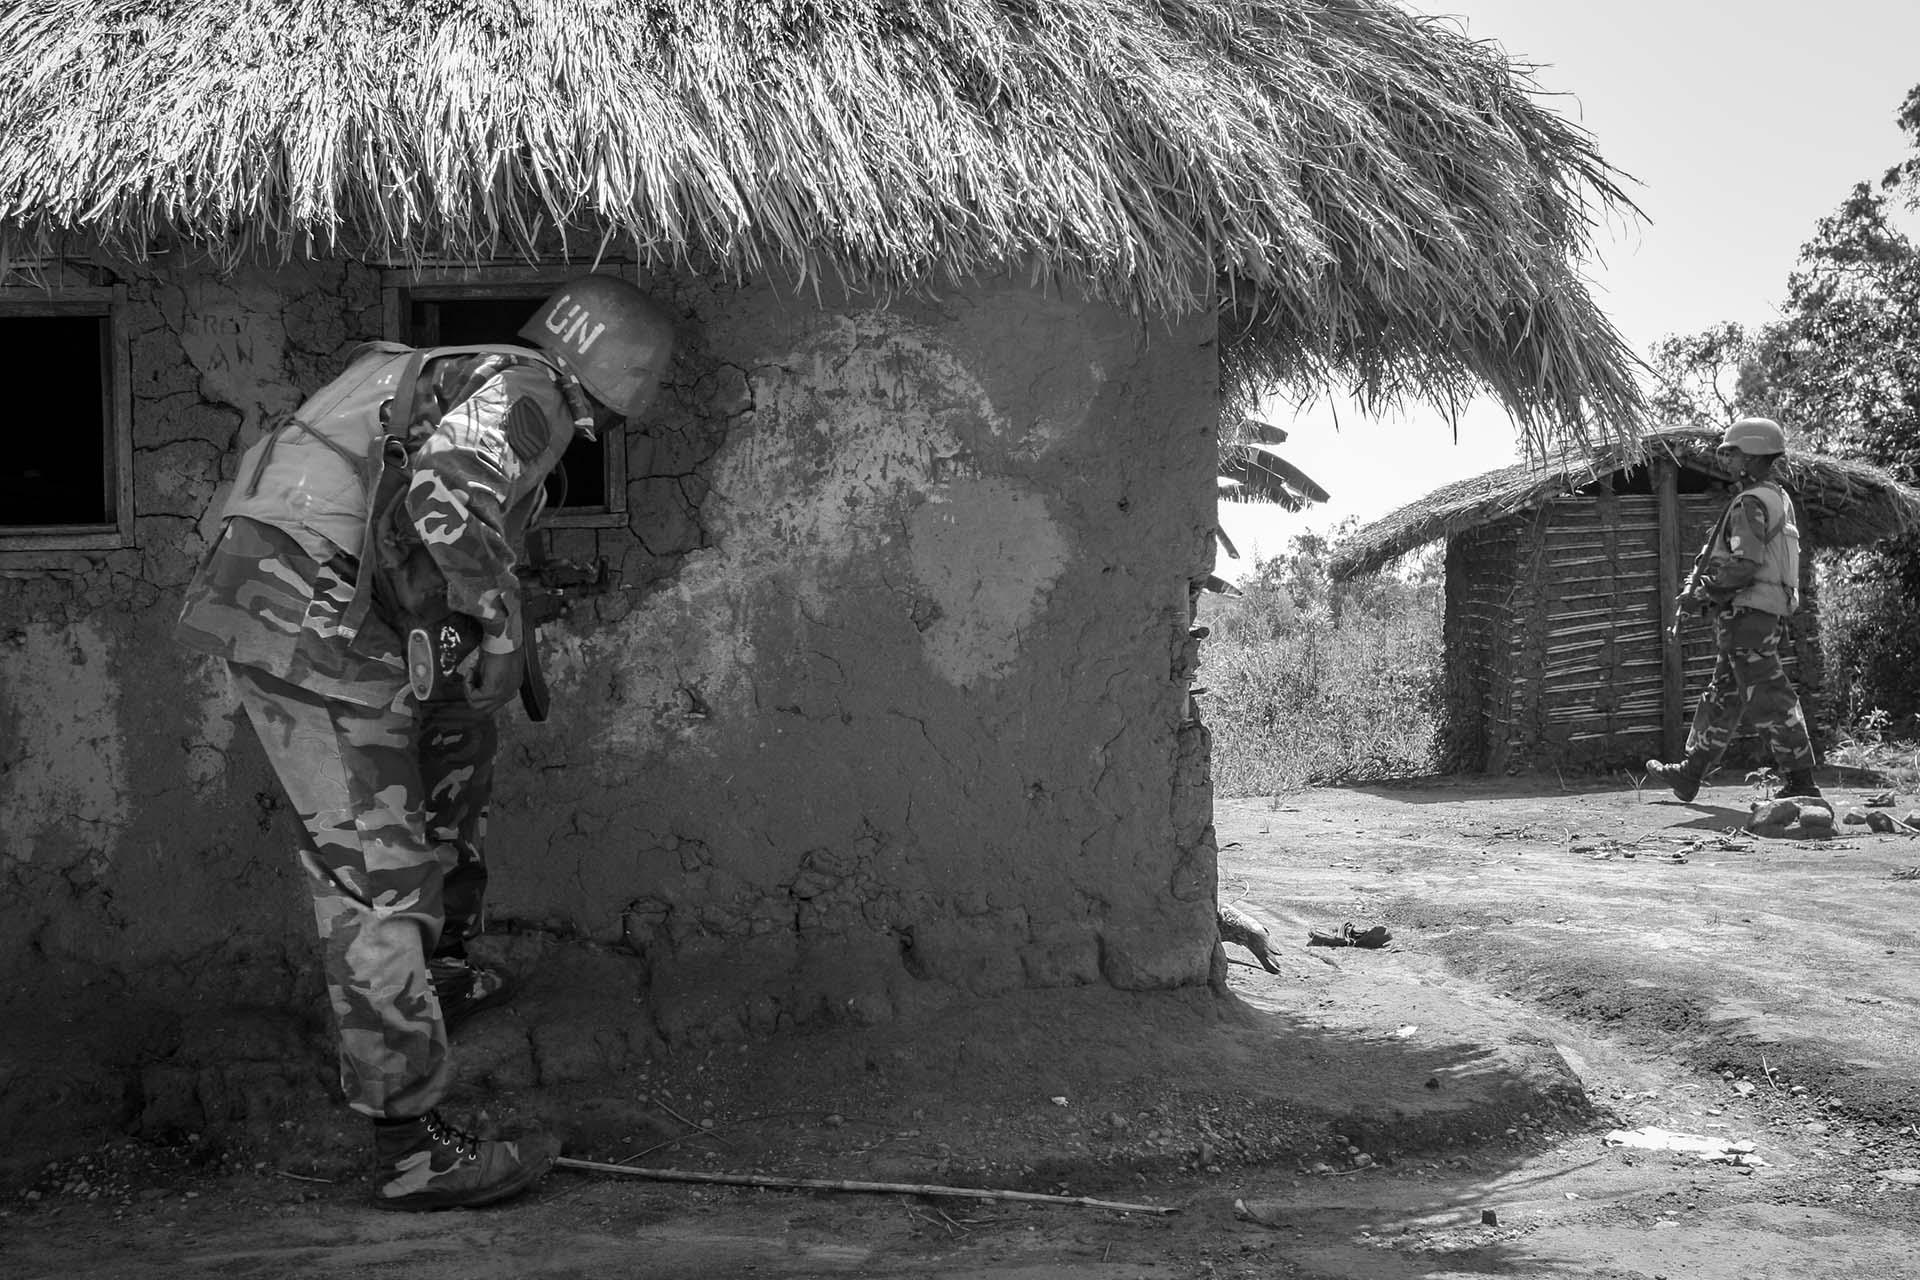 A UN peacekeeper from Bangladesh conduct a foot patrol in the village of Kaswara where there was fighting between militia and government soldiers supported by UN.